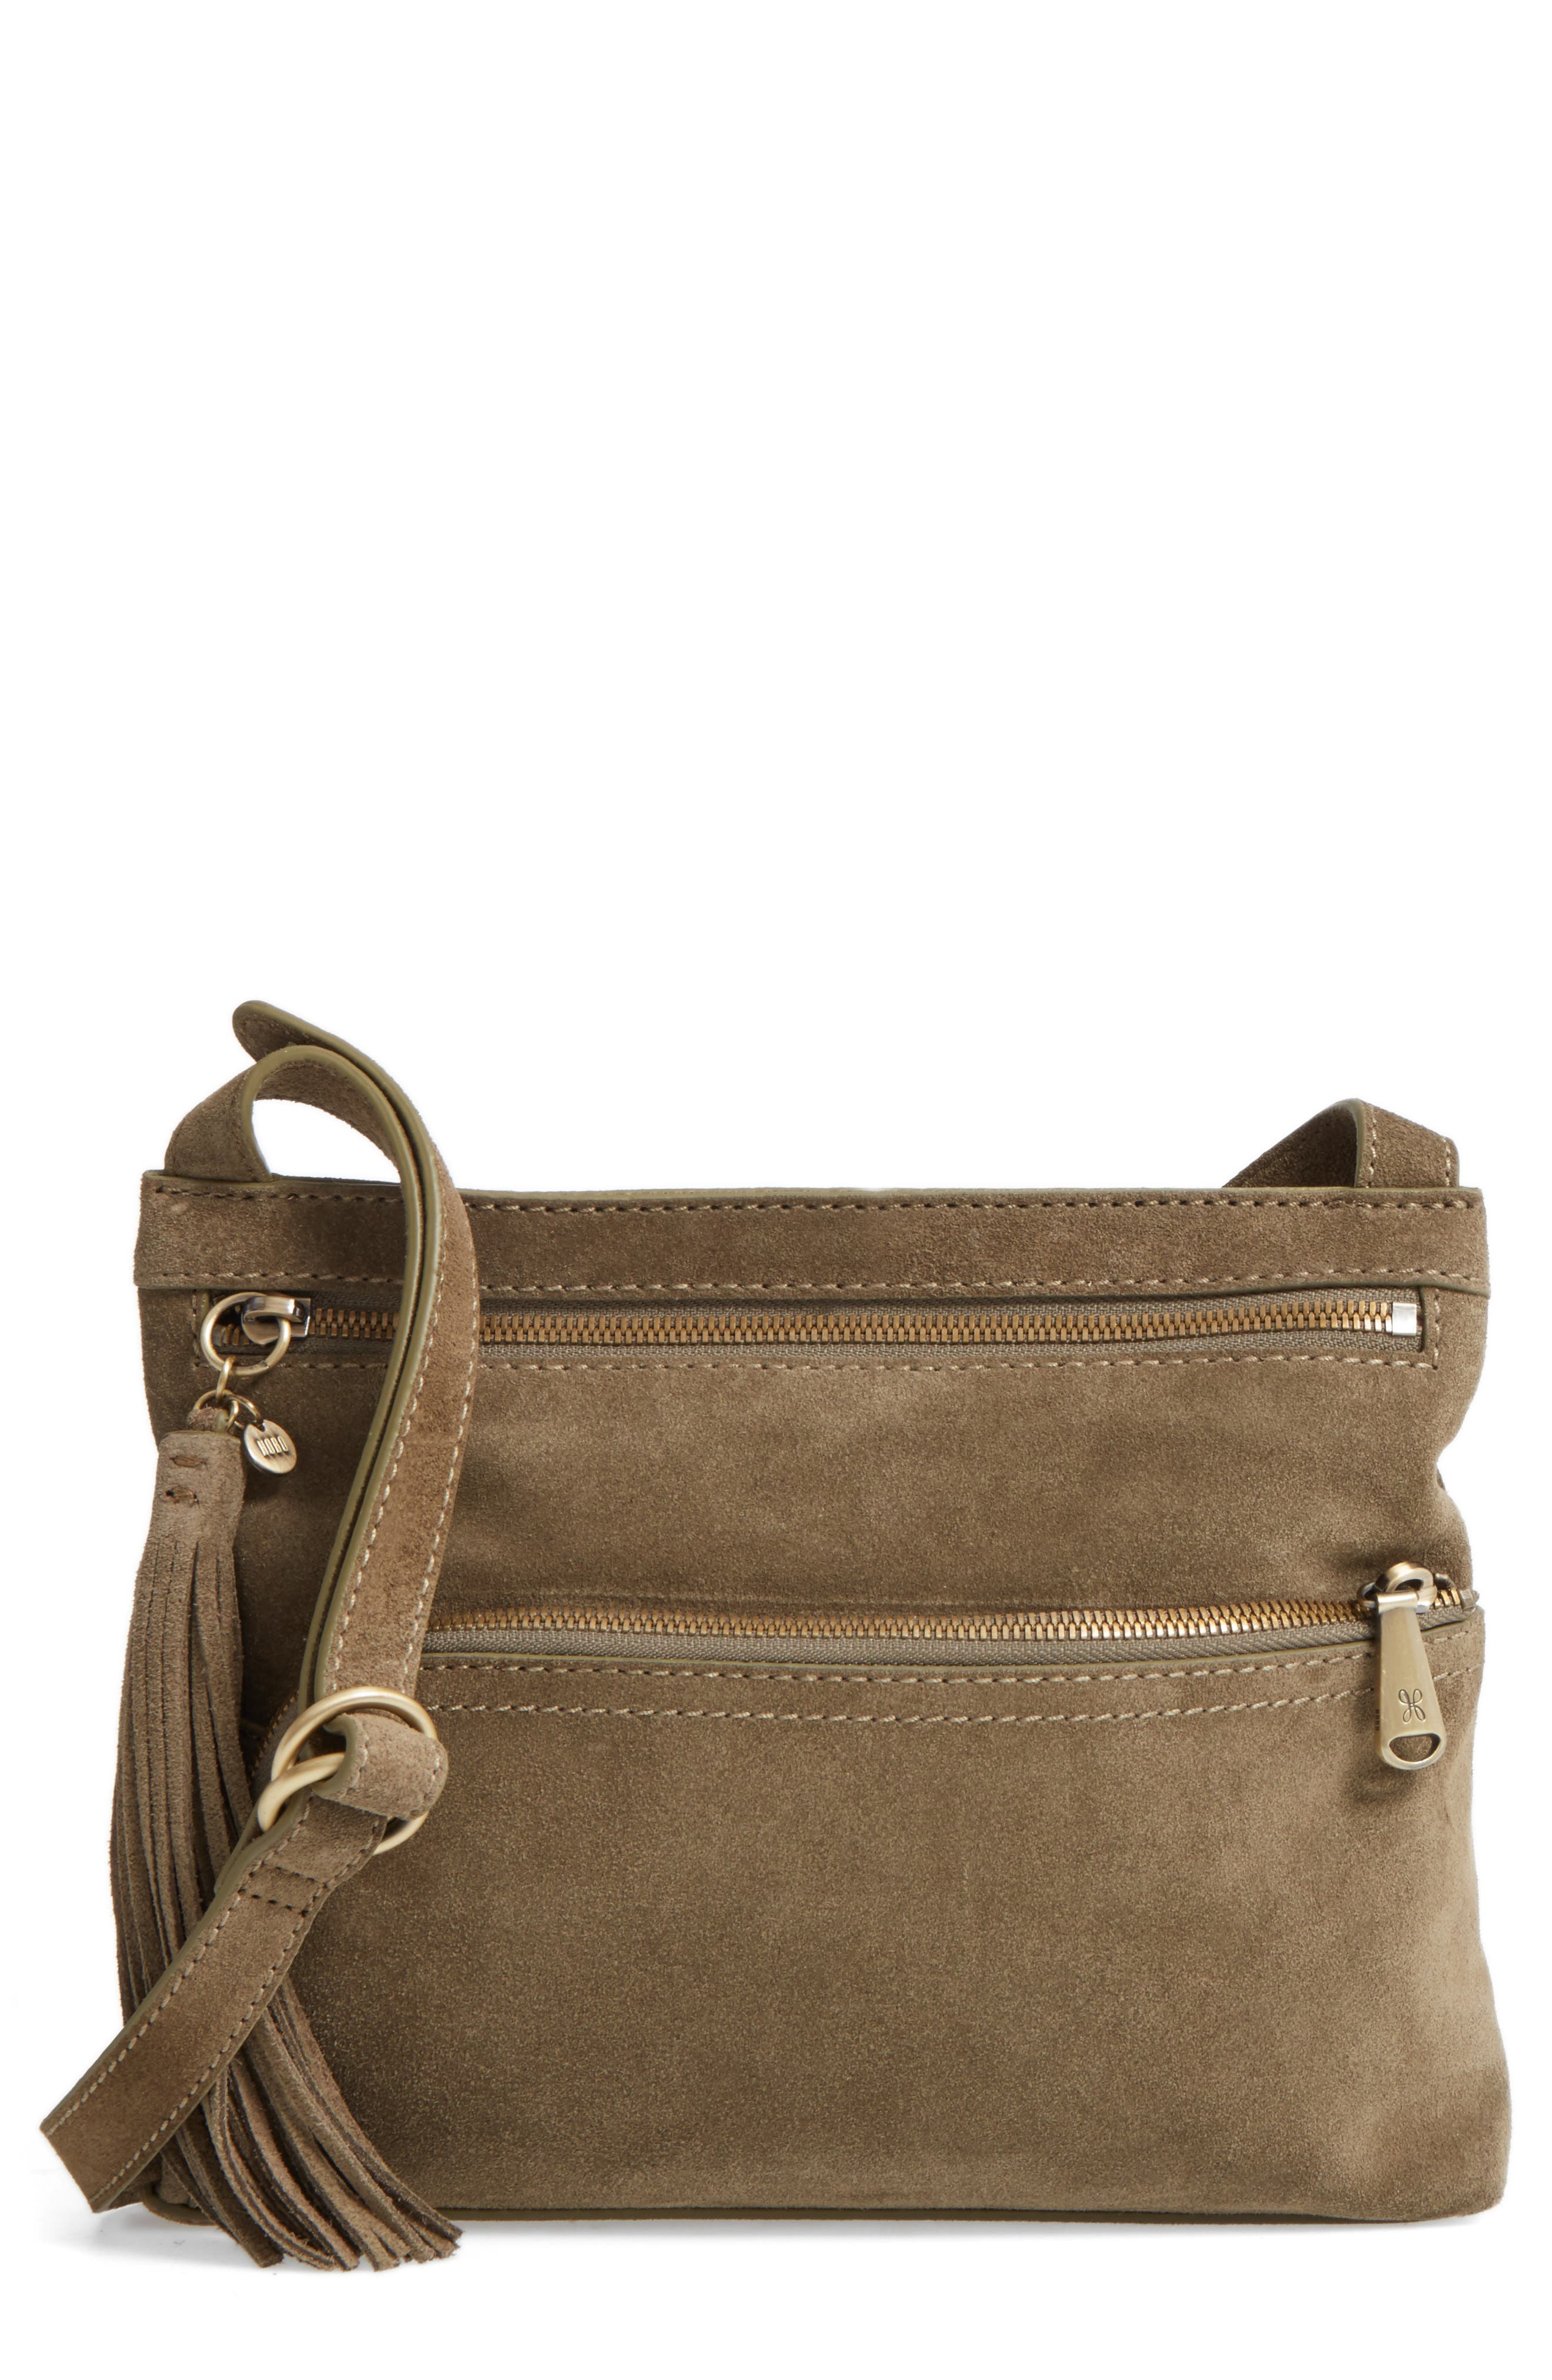 Cassie Calfskin Suede Crossbody Bag,                             Main thumbnail 1, color,                             Sage